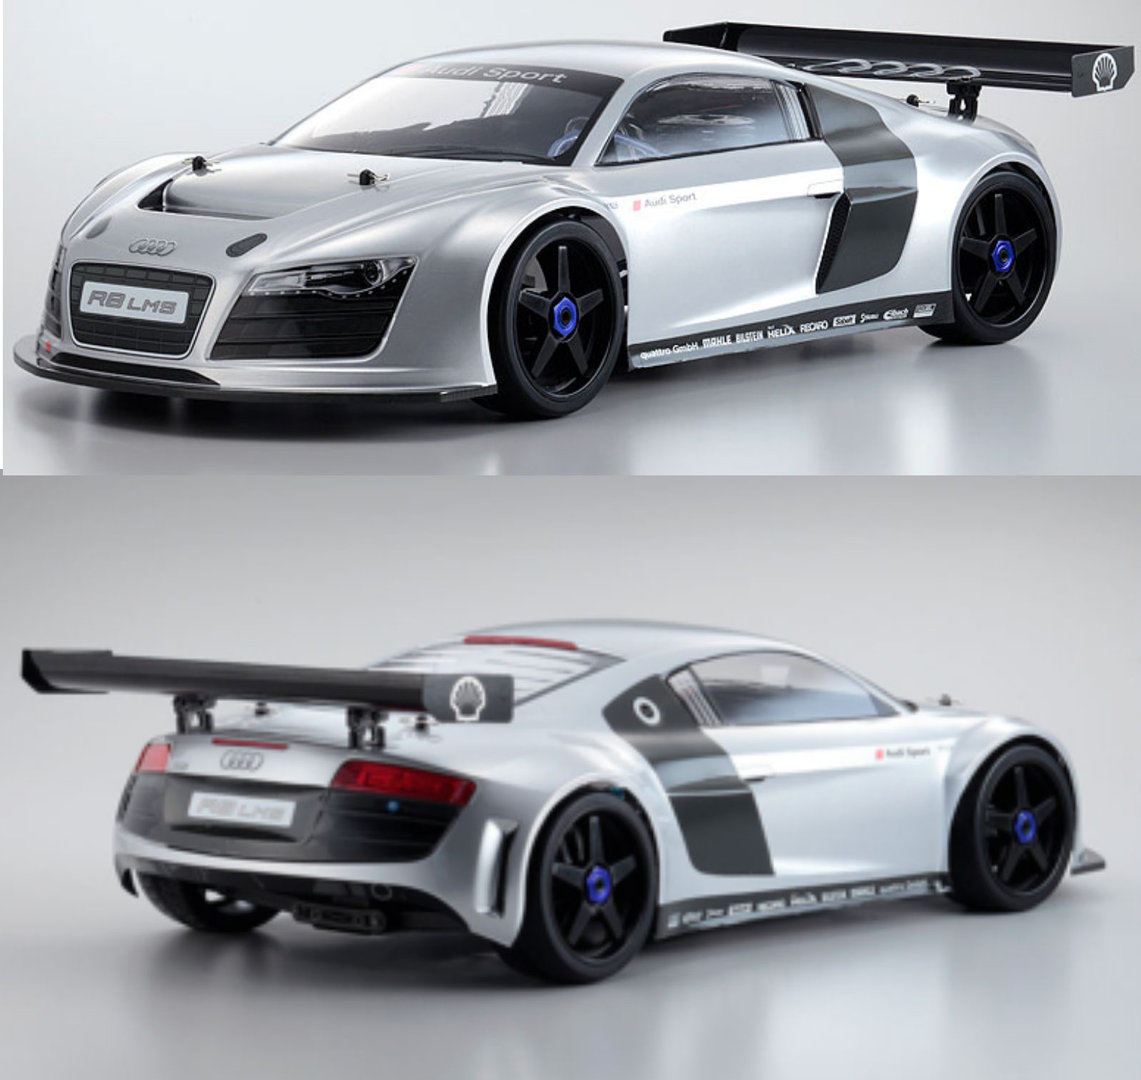 15 gas rc trucks with Kyosho Bk 1 8 Ep Inferno Gt2 Ve Rs Audi R8 30935 on 1 16 Rc Car Remote Control 500438417 furthermore Car And Truck Engines further Kyosho BK 1 8 EP Inferno GT2 VE RS Audi R8 30935 moreover Dynam Hawksky V2 Pnp furthermore 14 Scale Peterbilt Rc Truck Vs Nissan Patrol Suv.